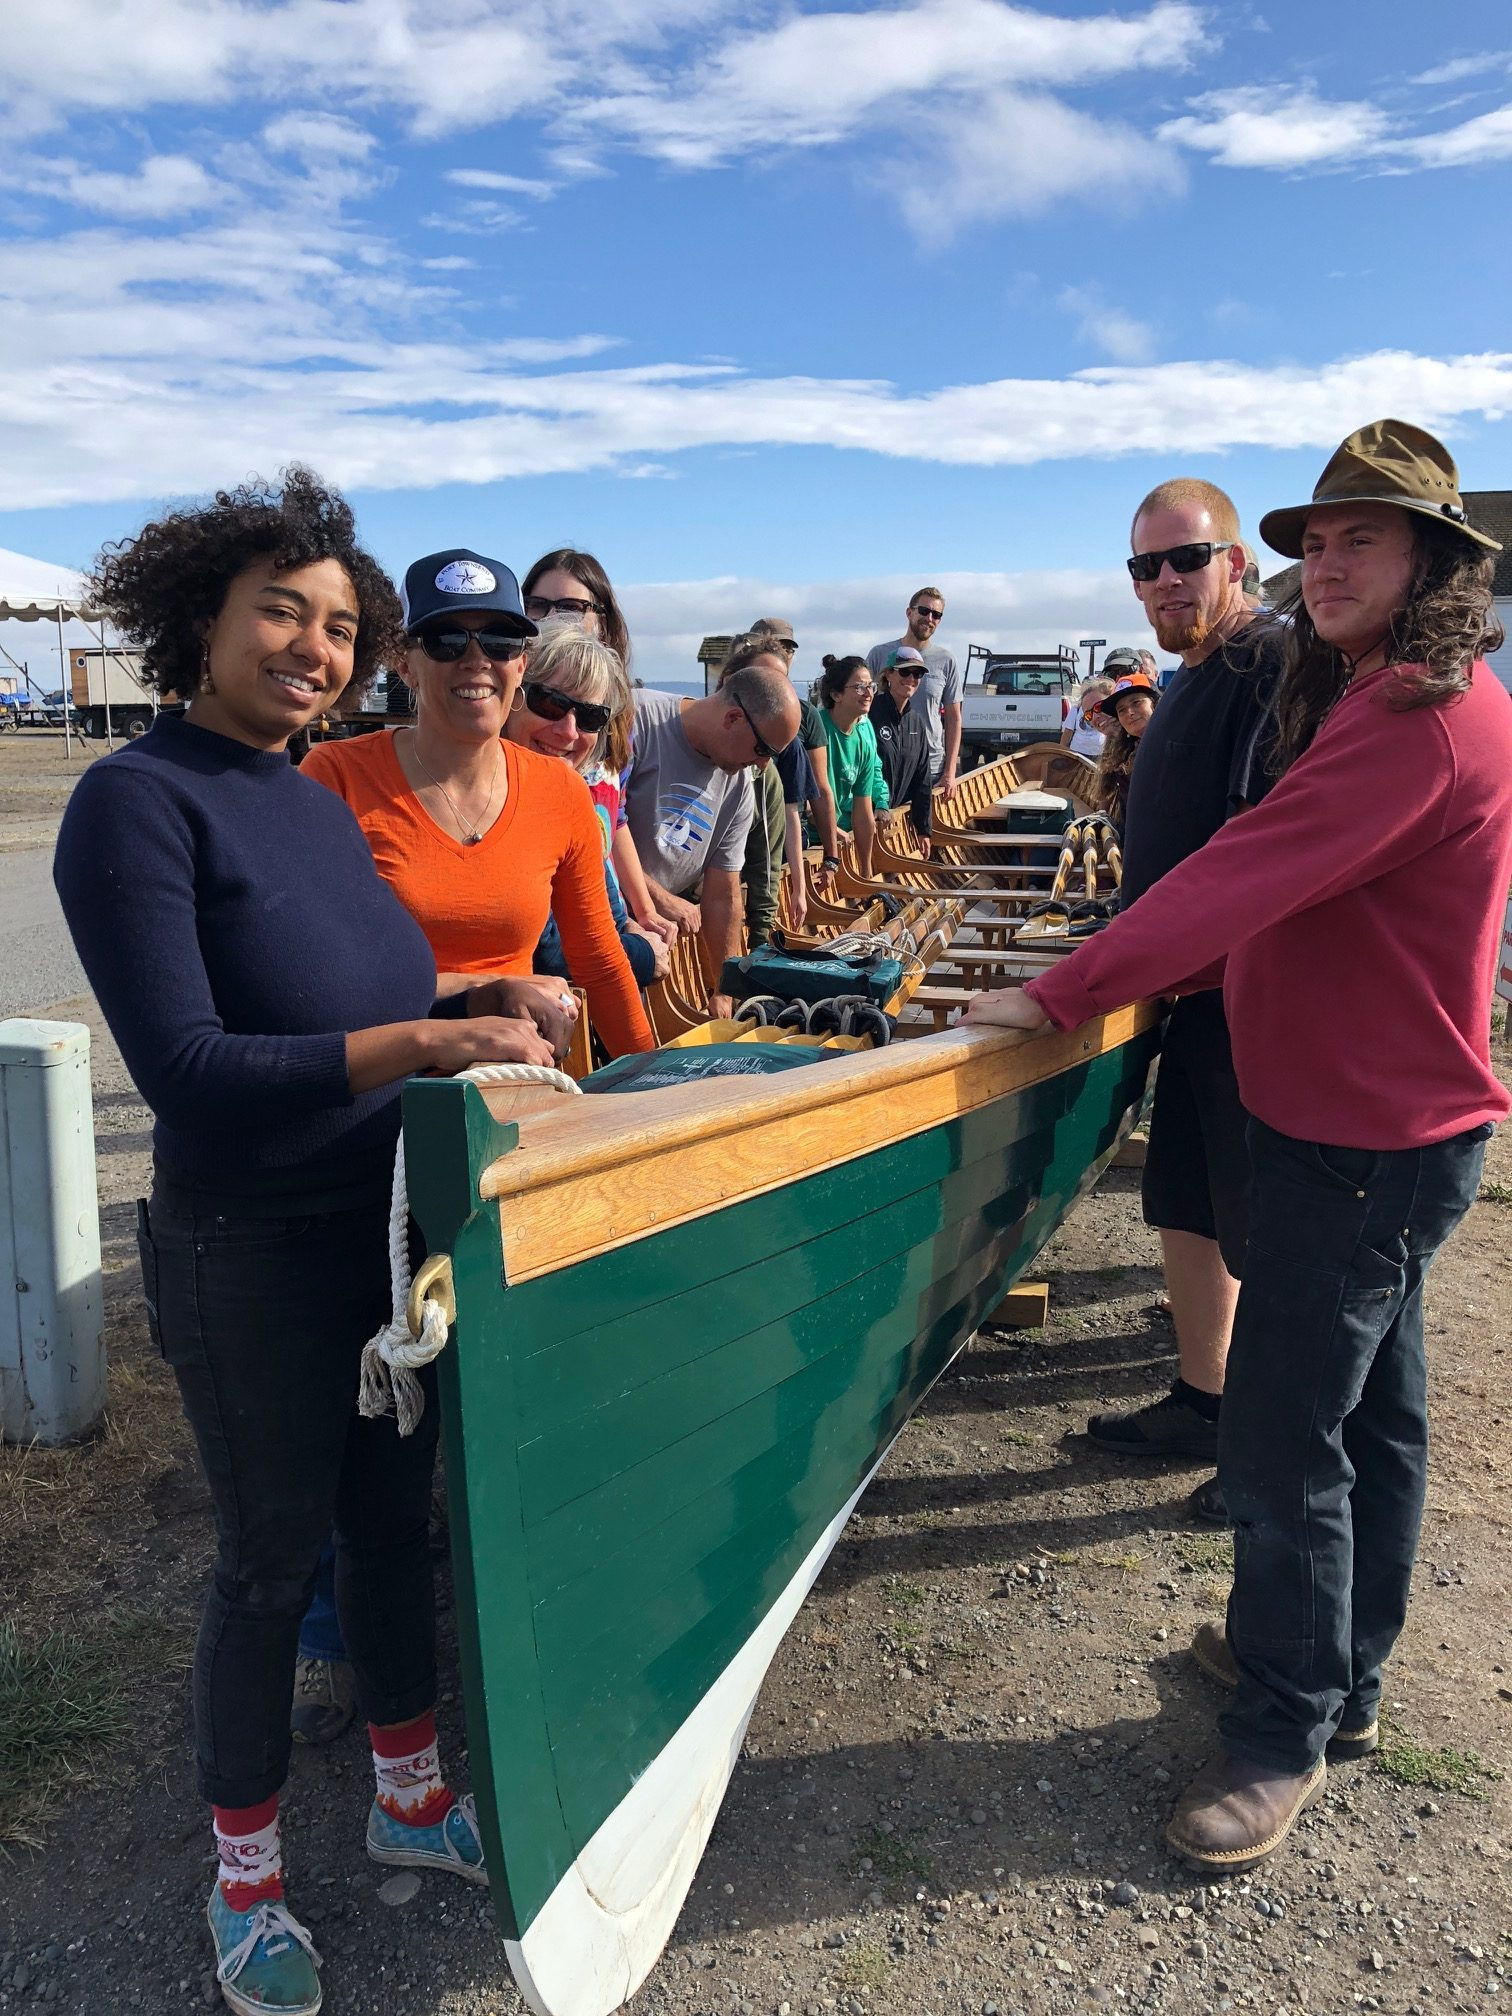 The Wooden Boat Festival is all go